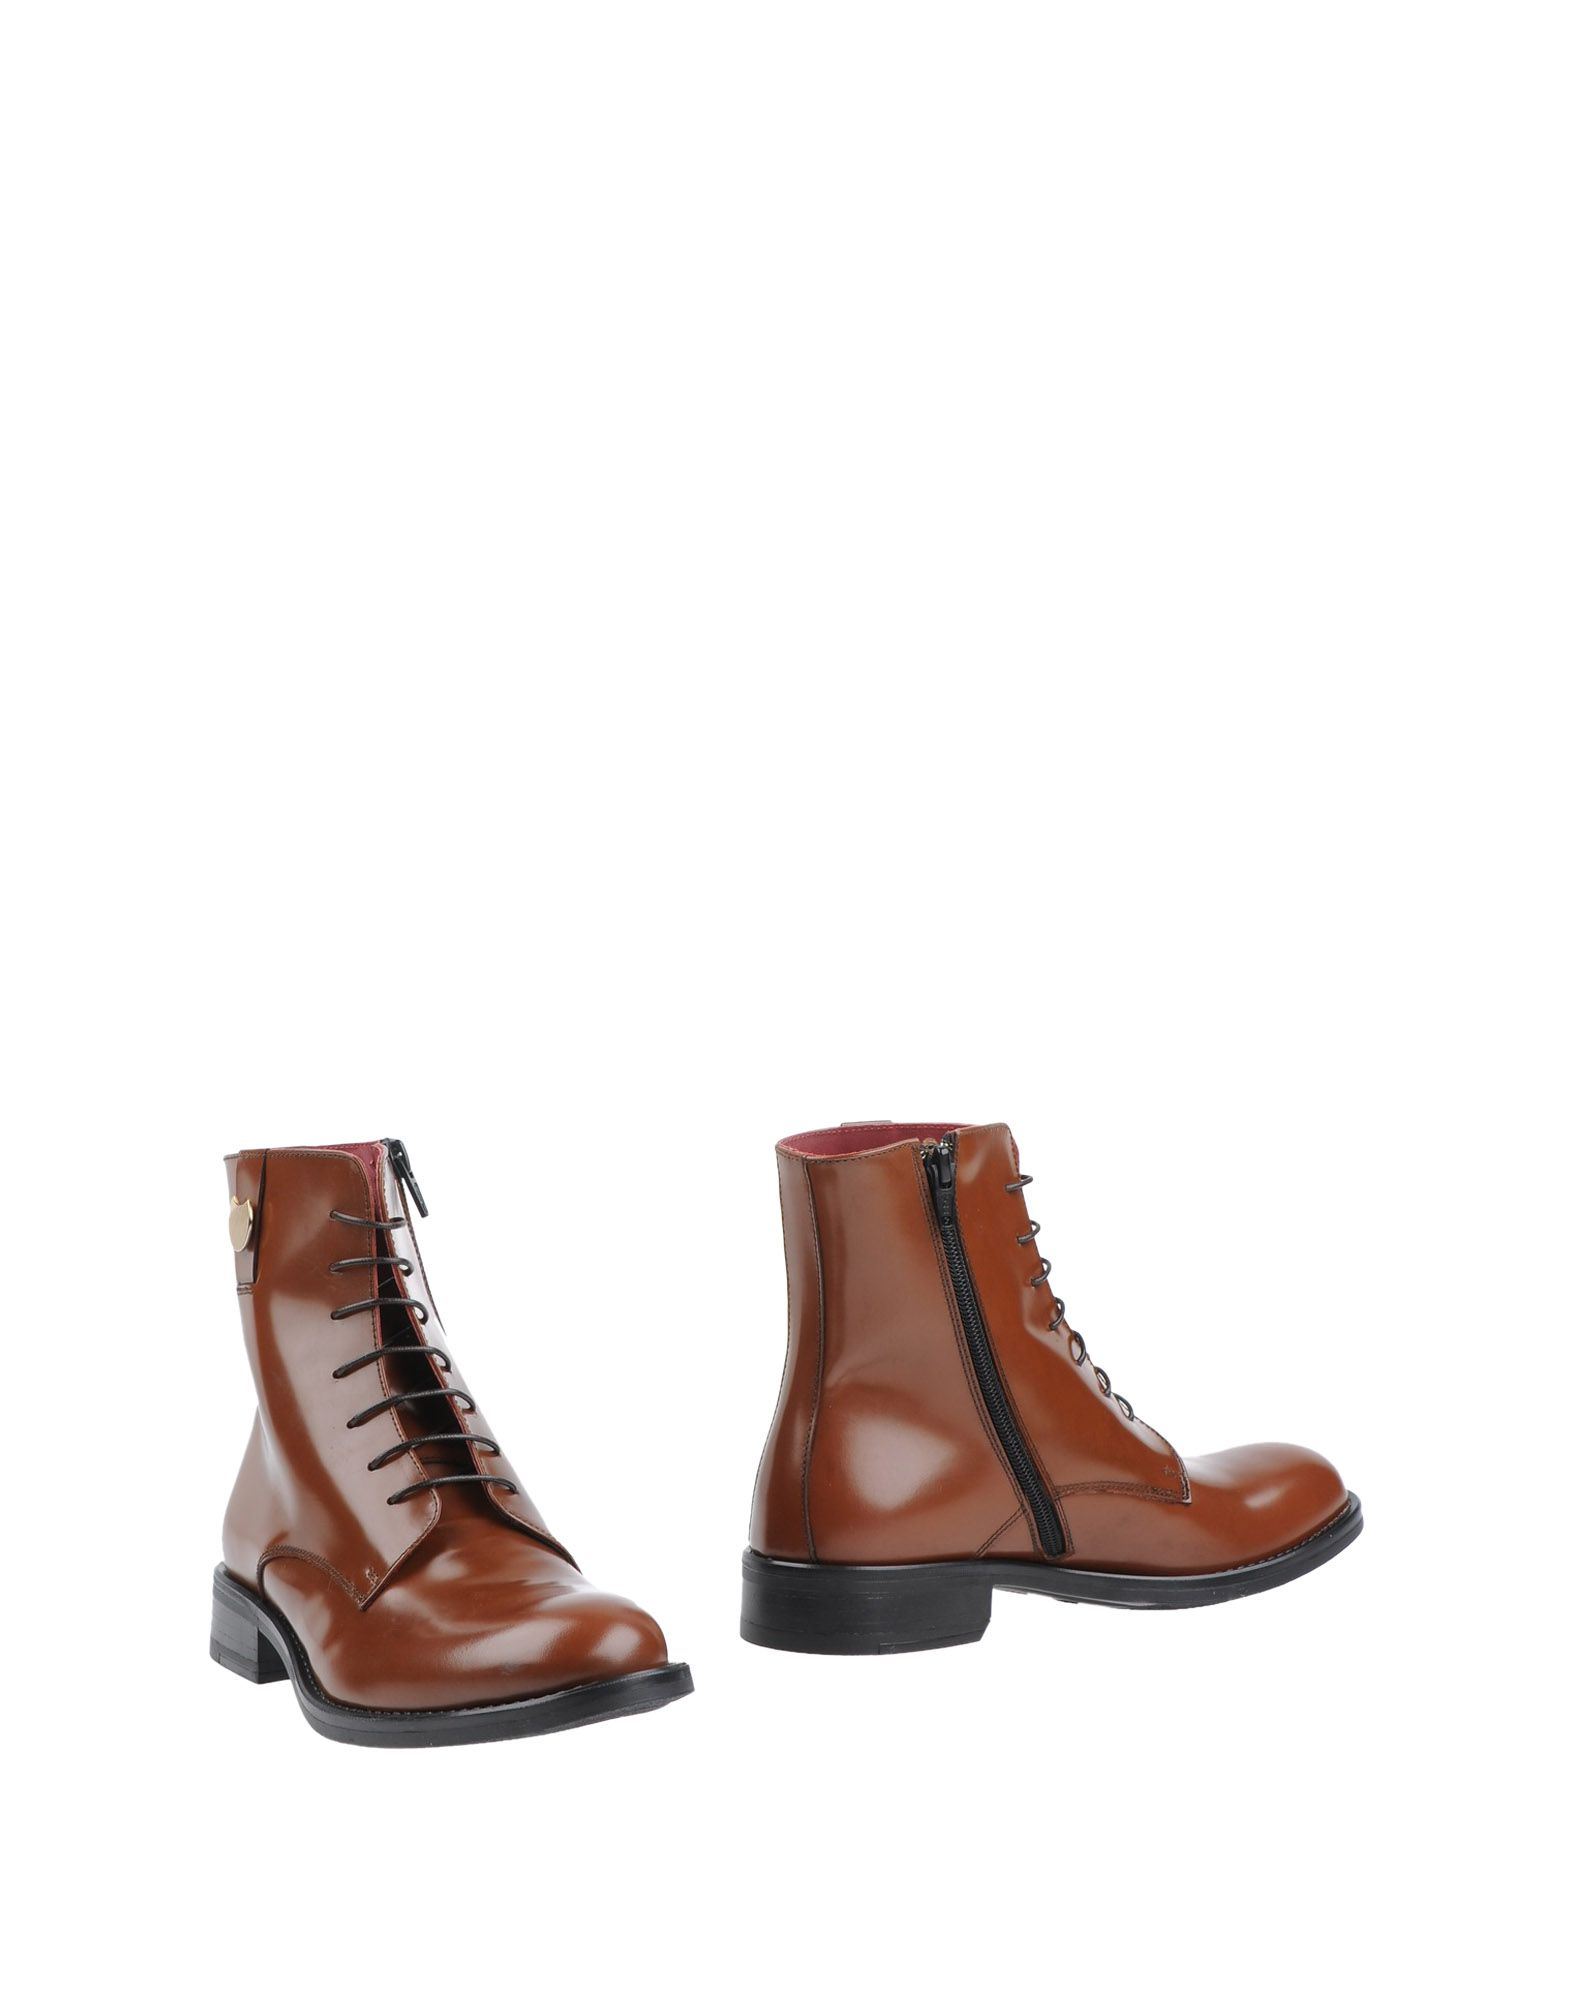 Bottine Gianfranco Lattanzi Femme - Bottines Gianfranco Lattanzi Marron Meilleur modèle de vente